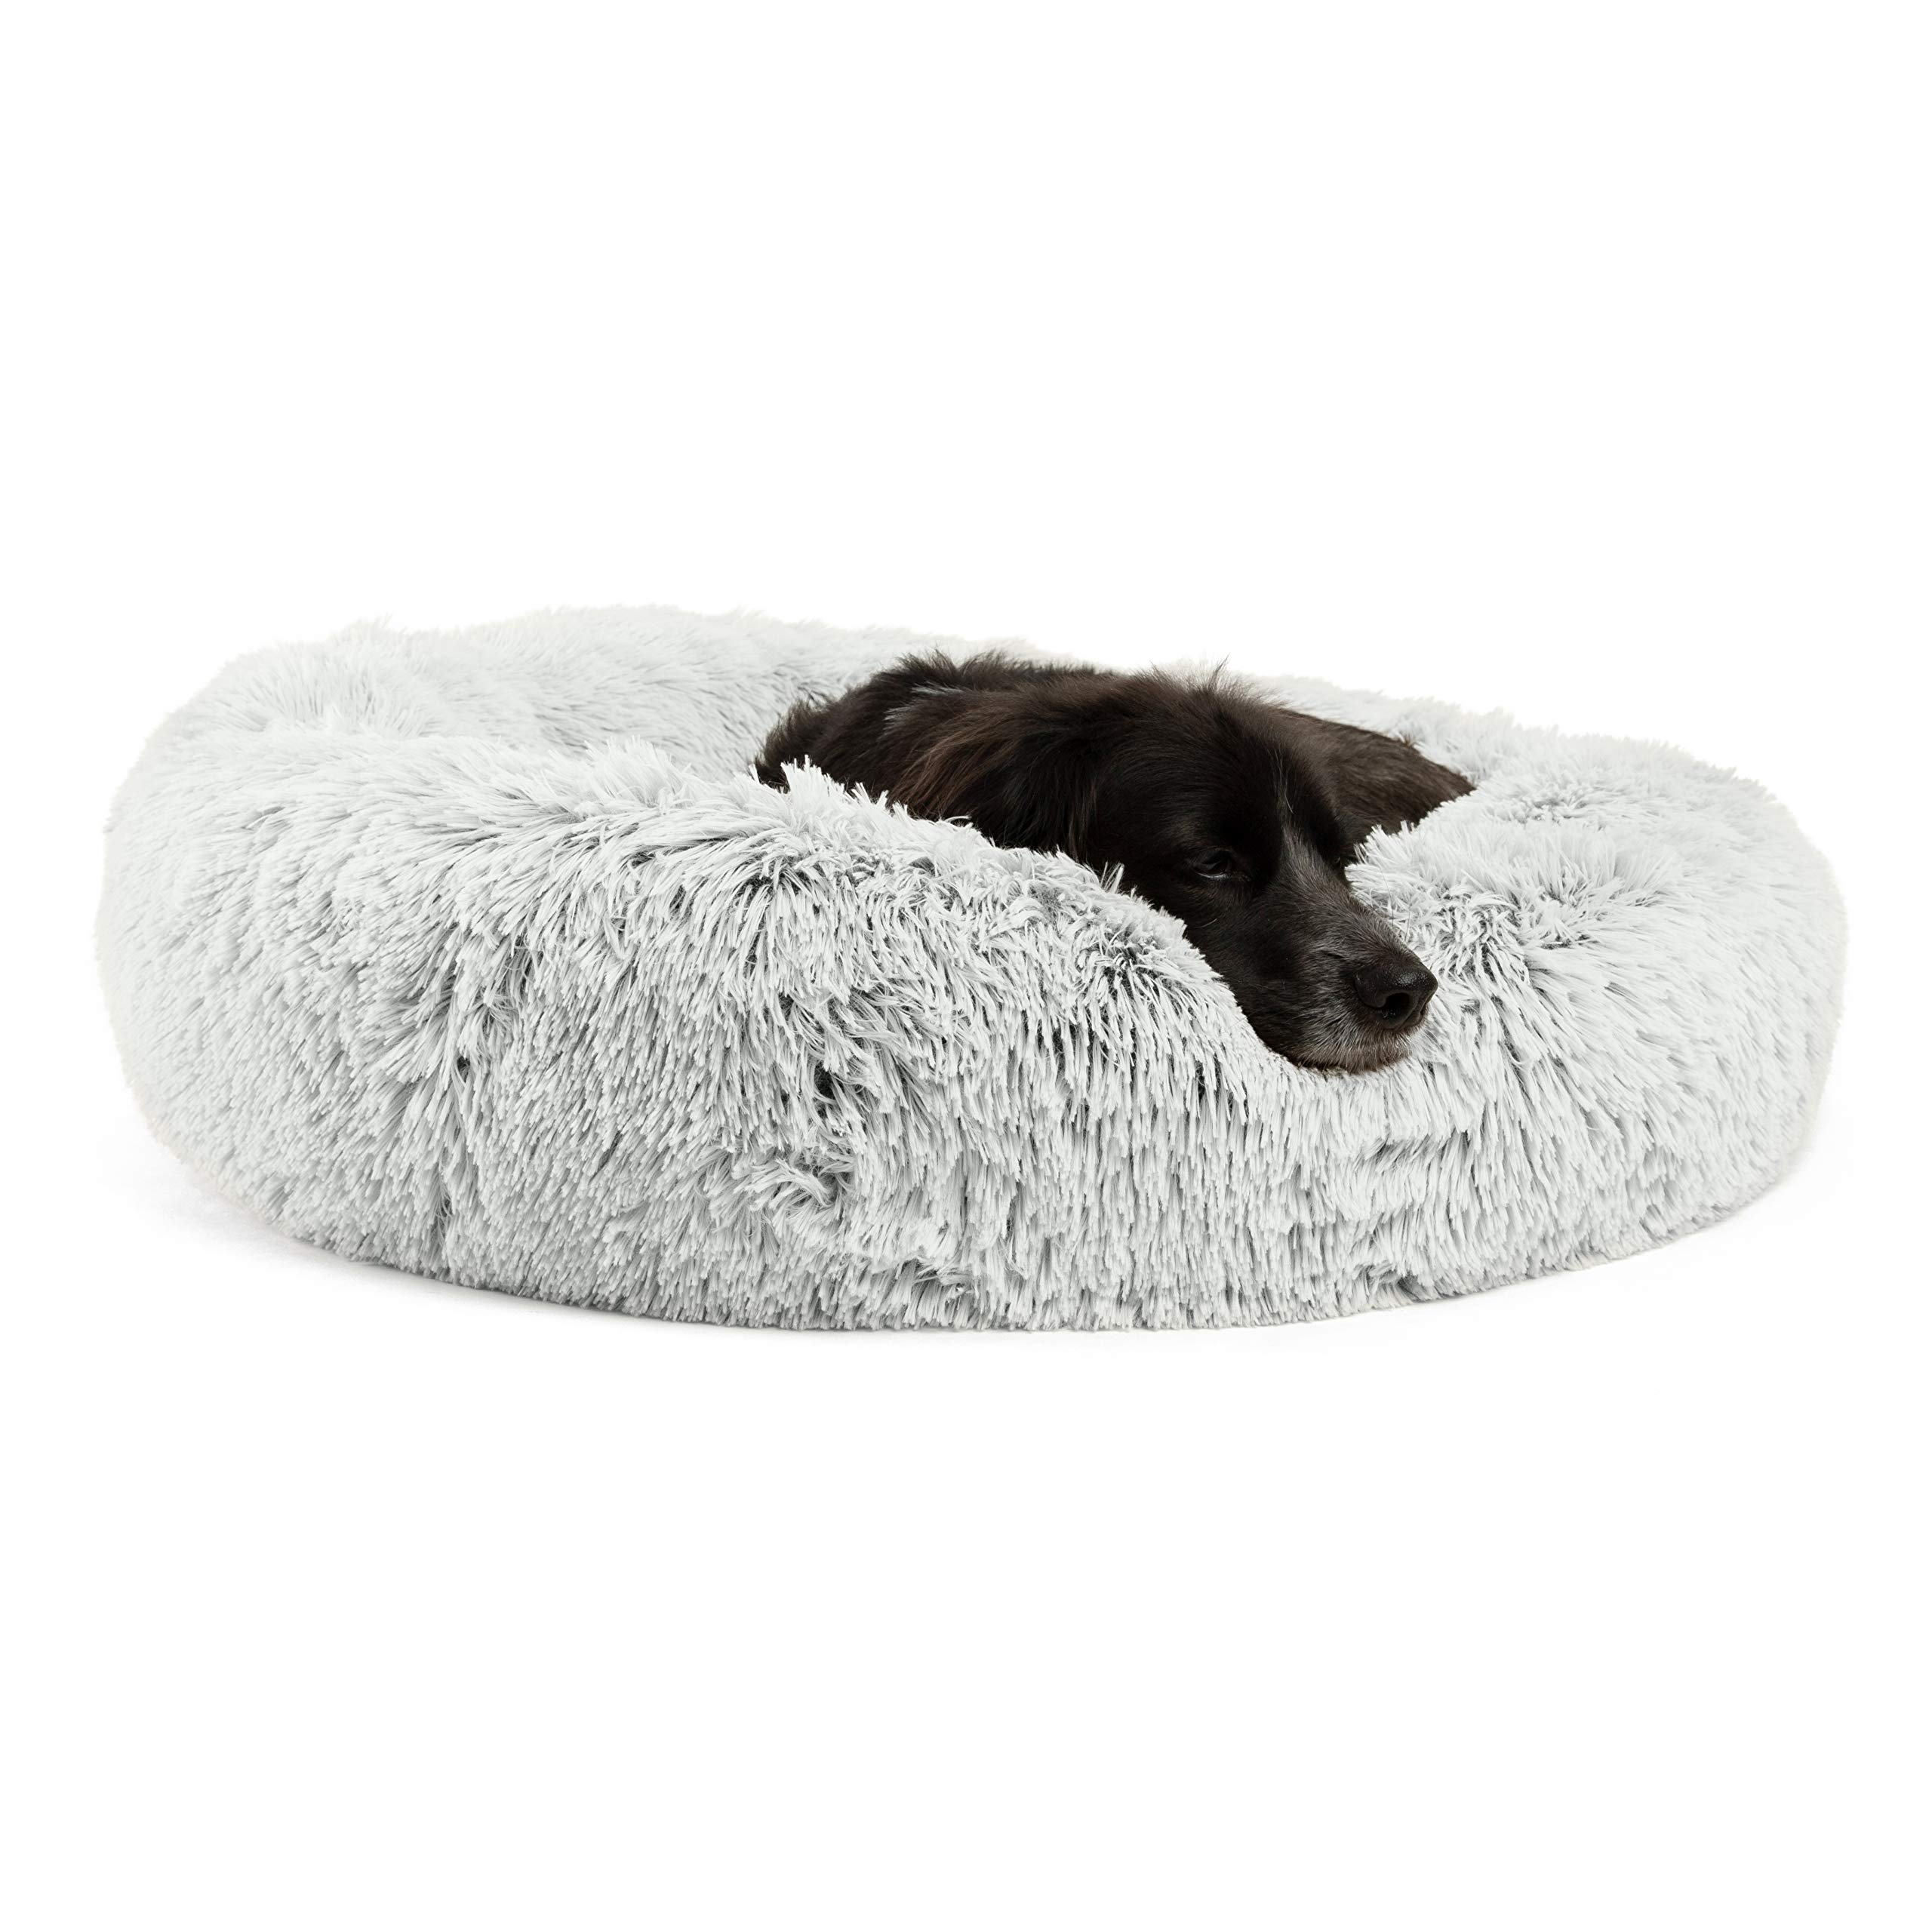 Best Friends by Sheri Calming Shag Vegan Fur Donut Cuddler (30x30, Zippered) - Medium Round Donut Cat & Dog Cushion Bed, Warming & Cozy for Improved Sleep, Machine Washable - Petsup to 45 Lbs by Best Friends by Sheri